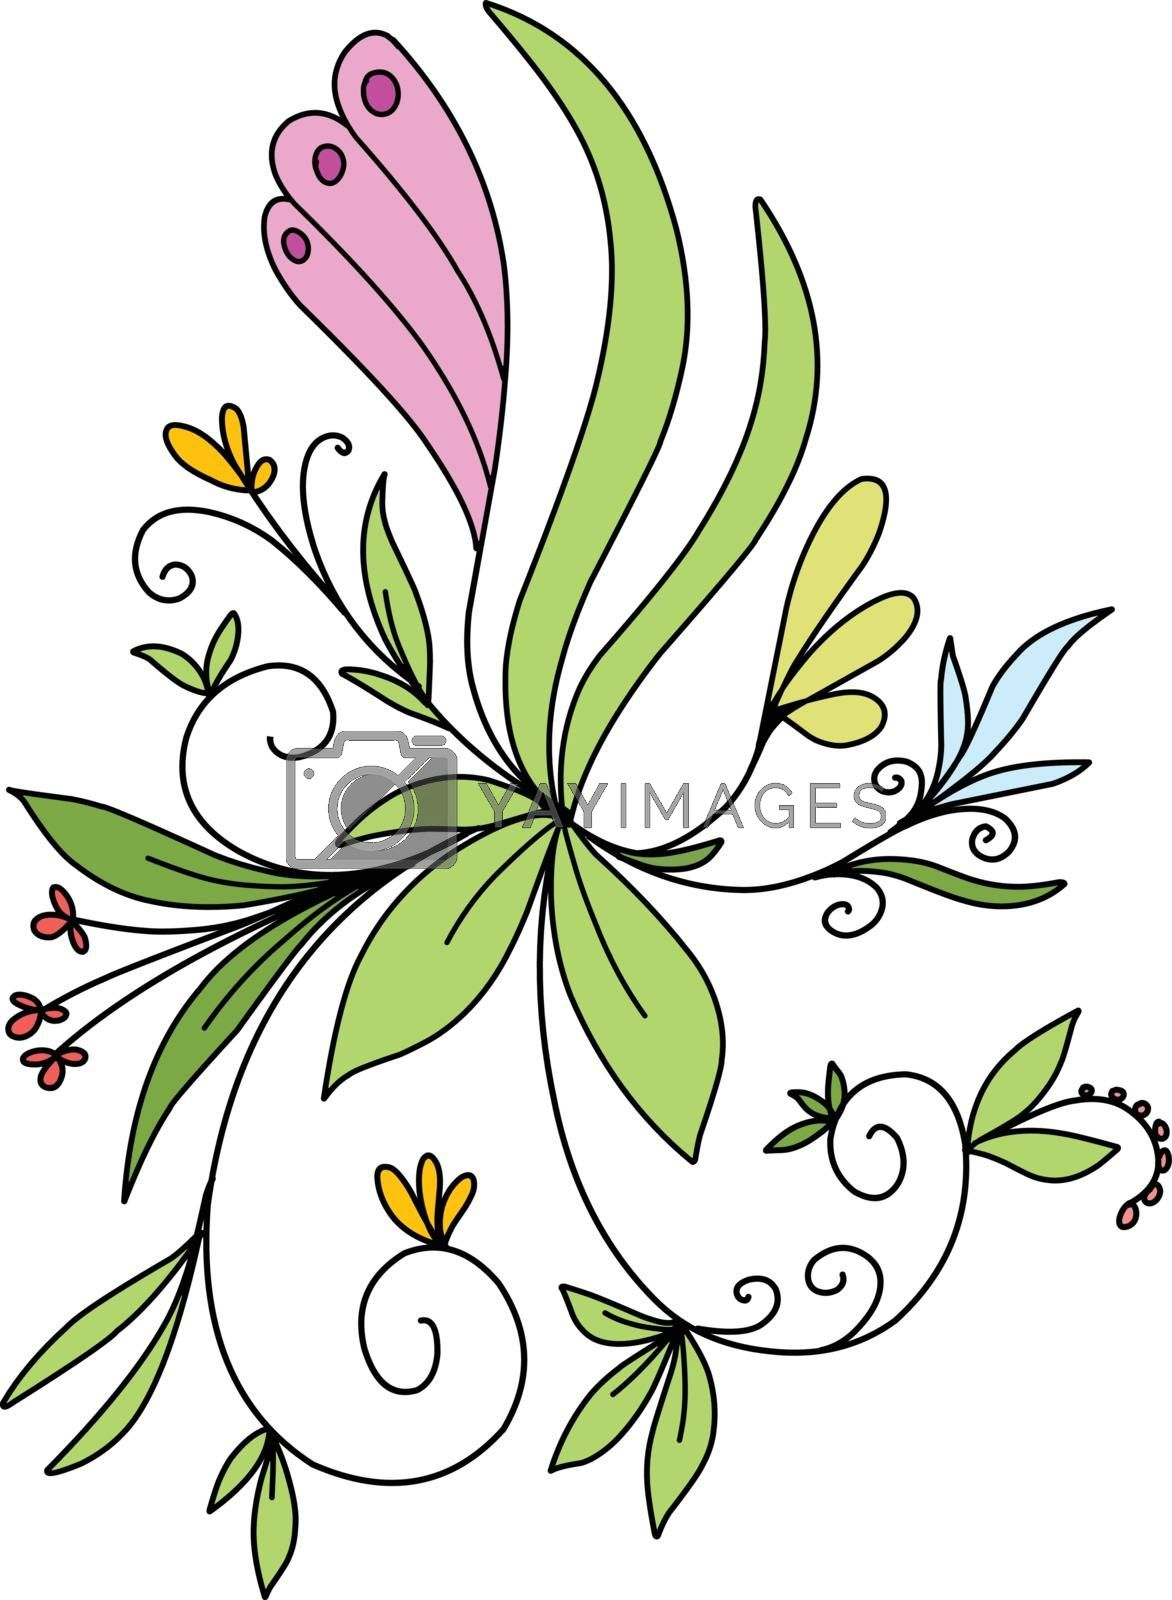 Stock Illustration Abstract Floral Pattern on a White Background